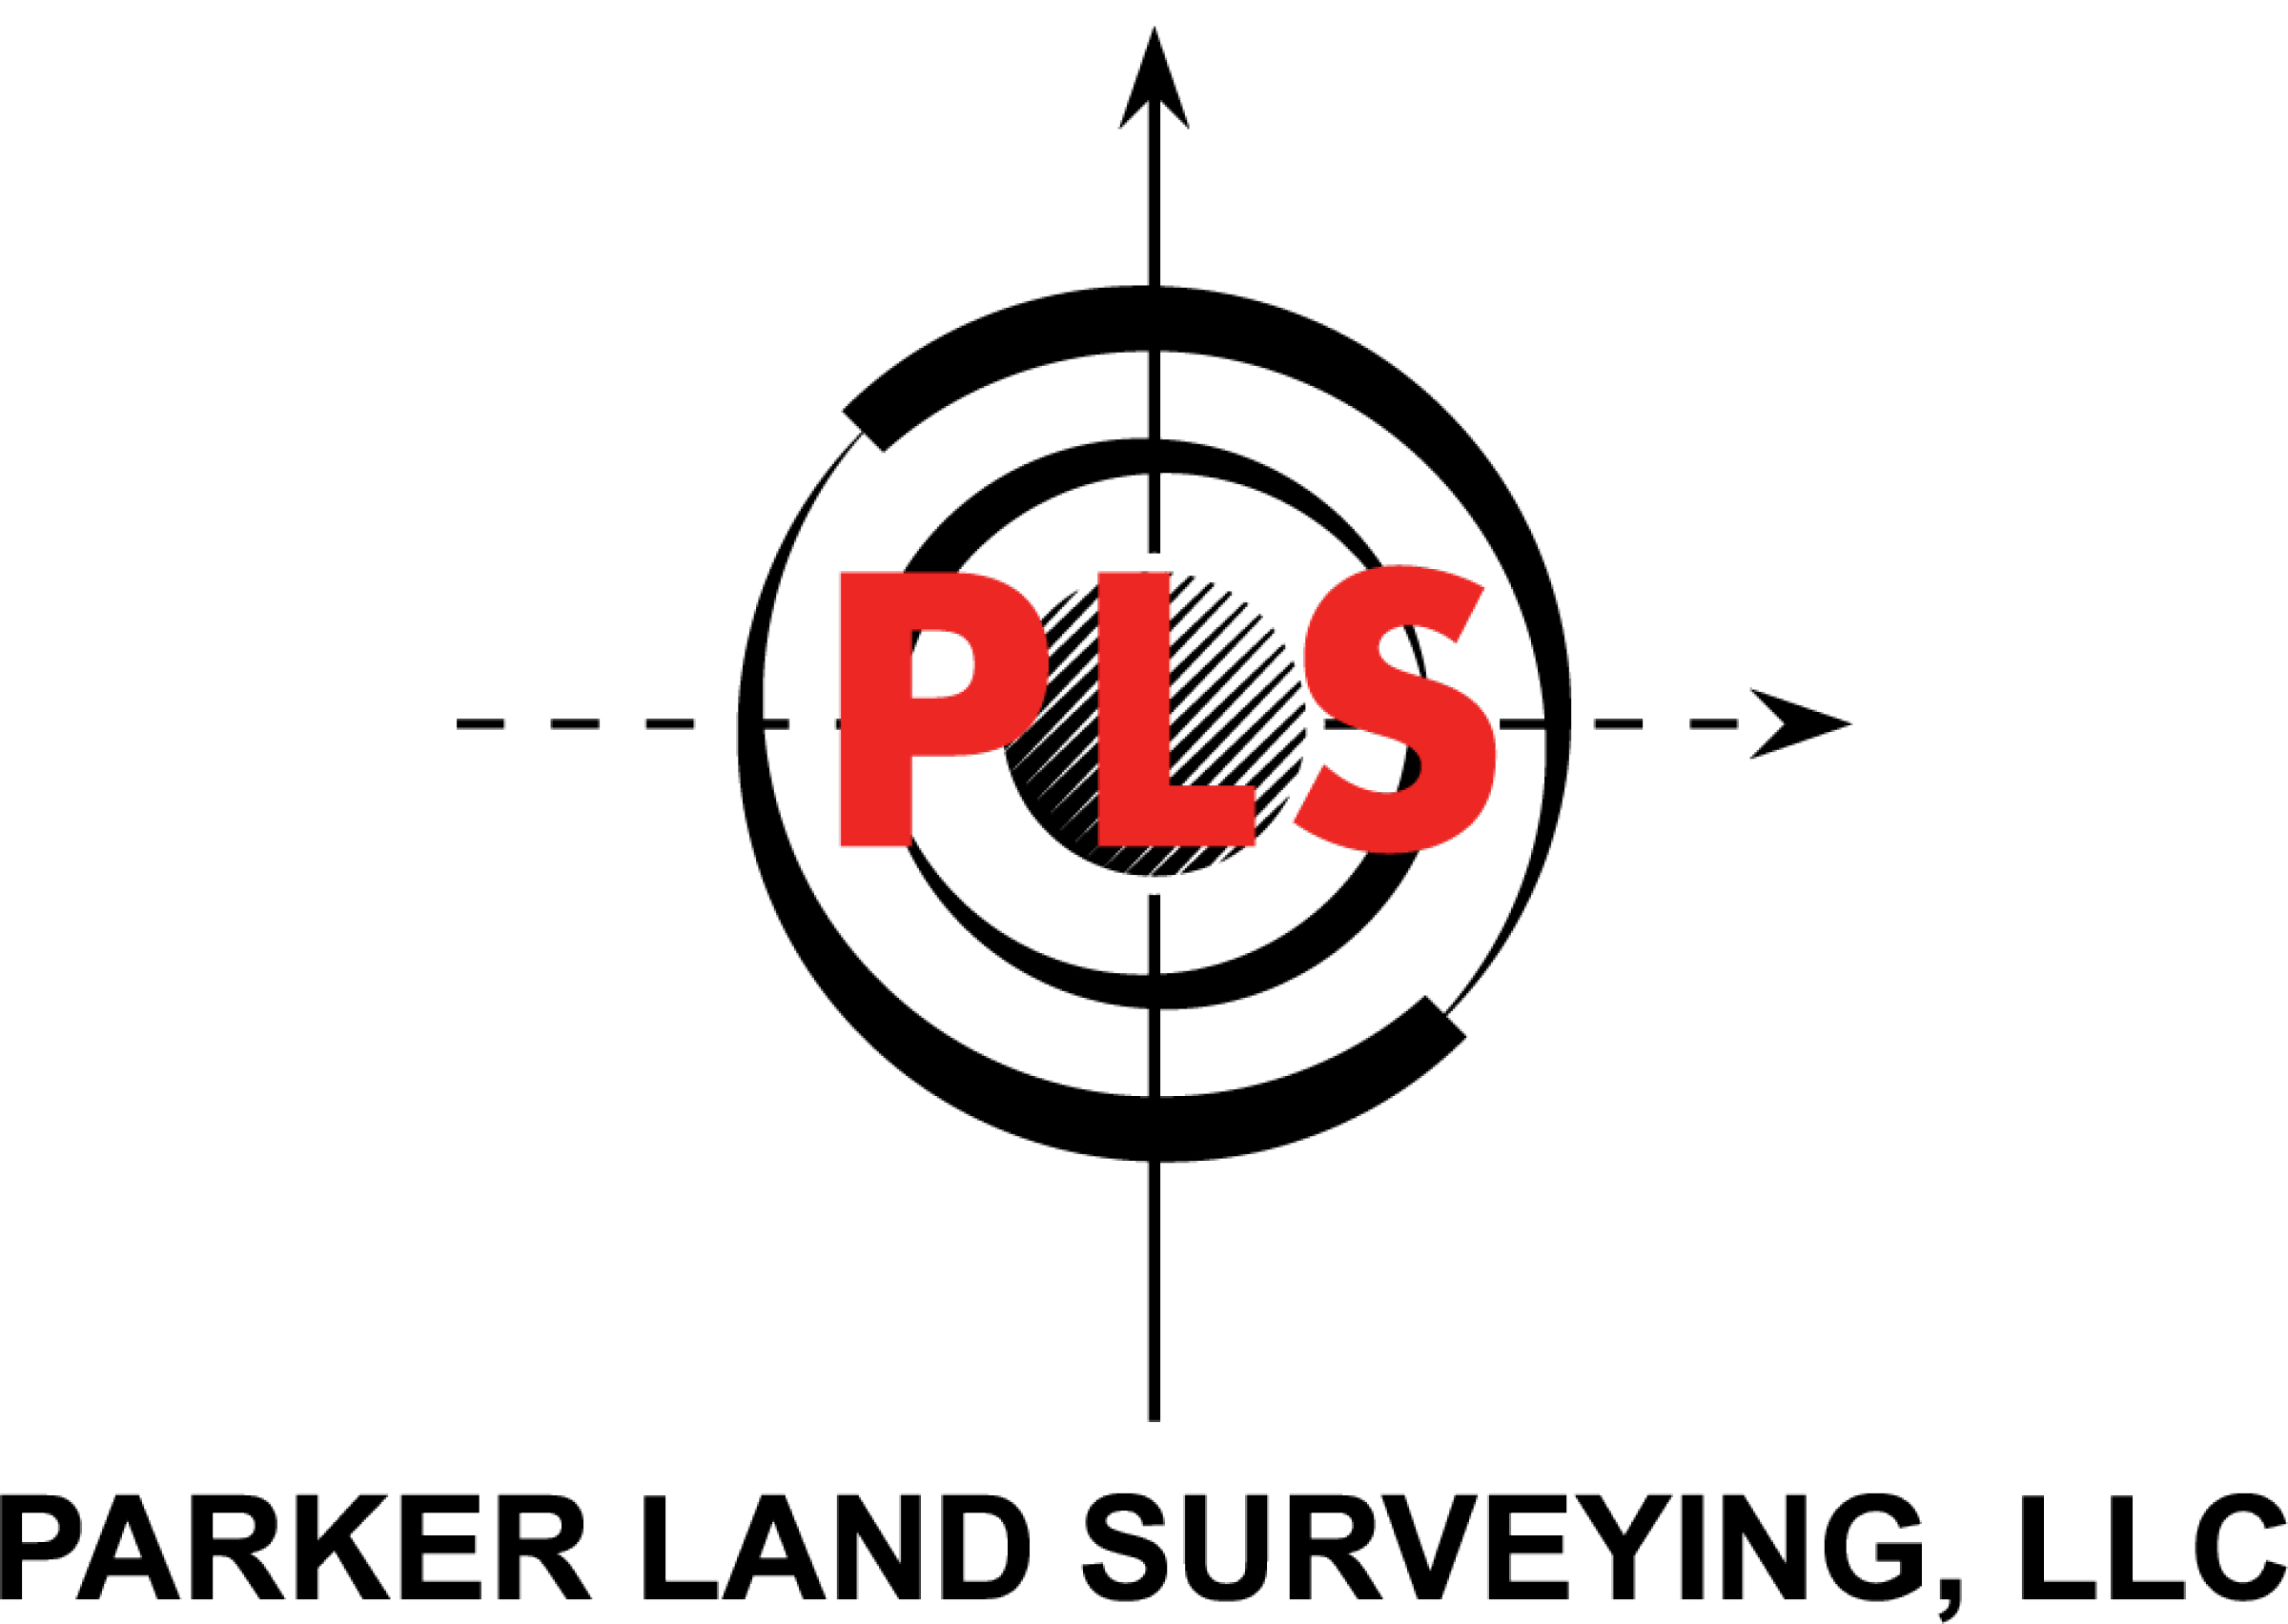 2021 Parker Land Surveying